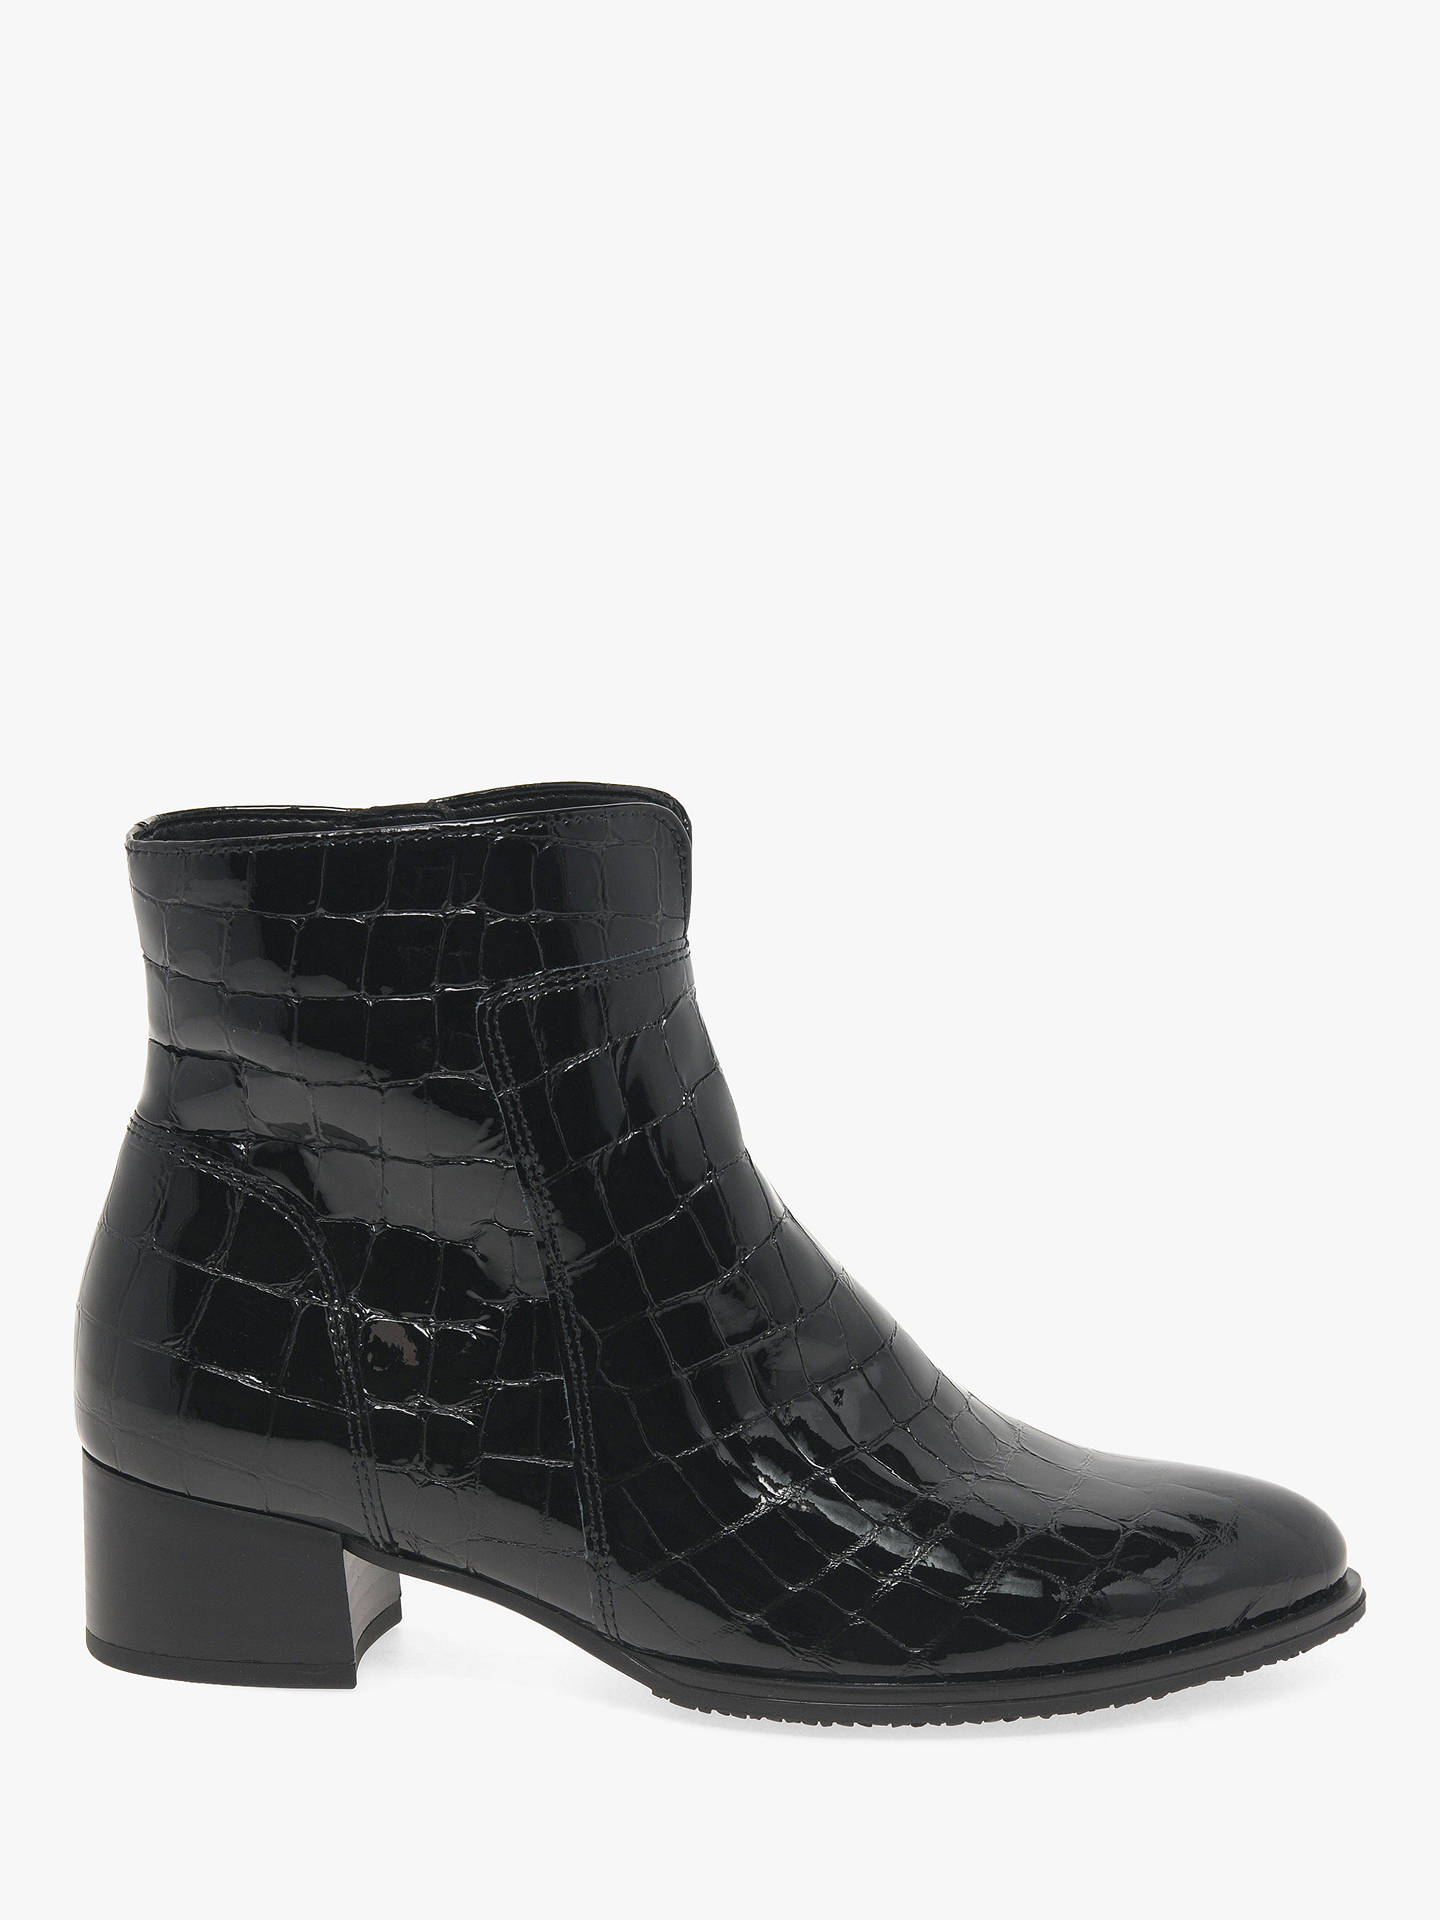 performance sportswear elegant and graceful rich and magnificent Gabor Delphino Block Heel Leather Ankle Boots, Black Patent